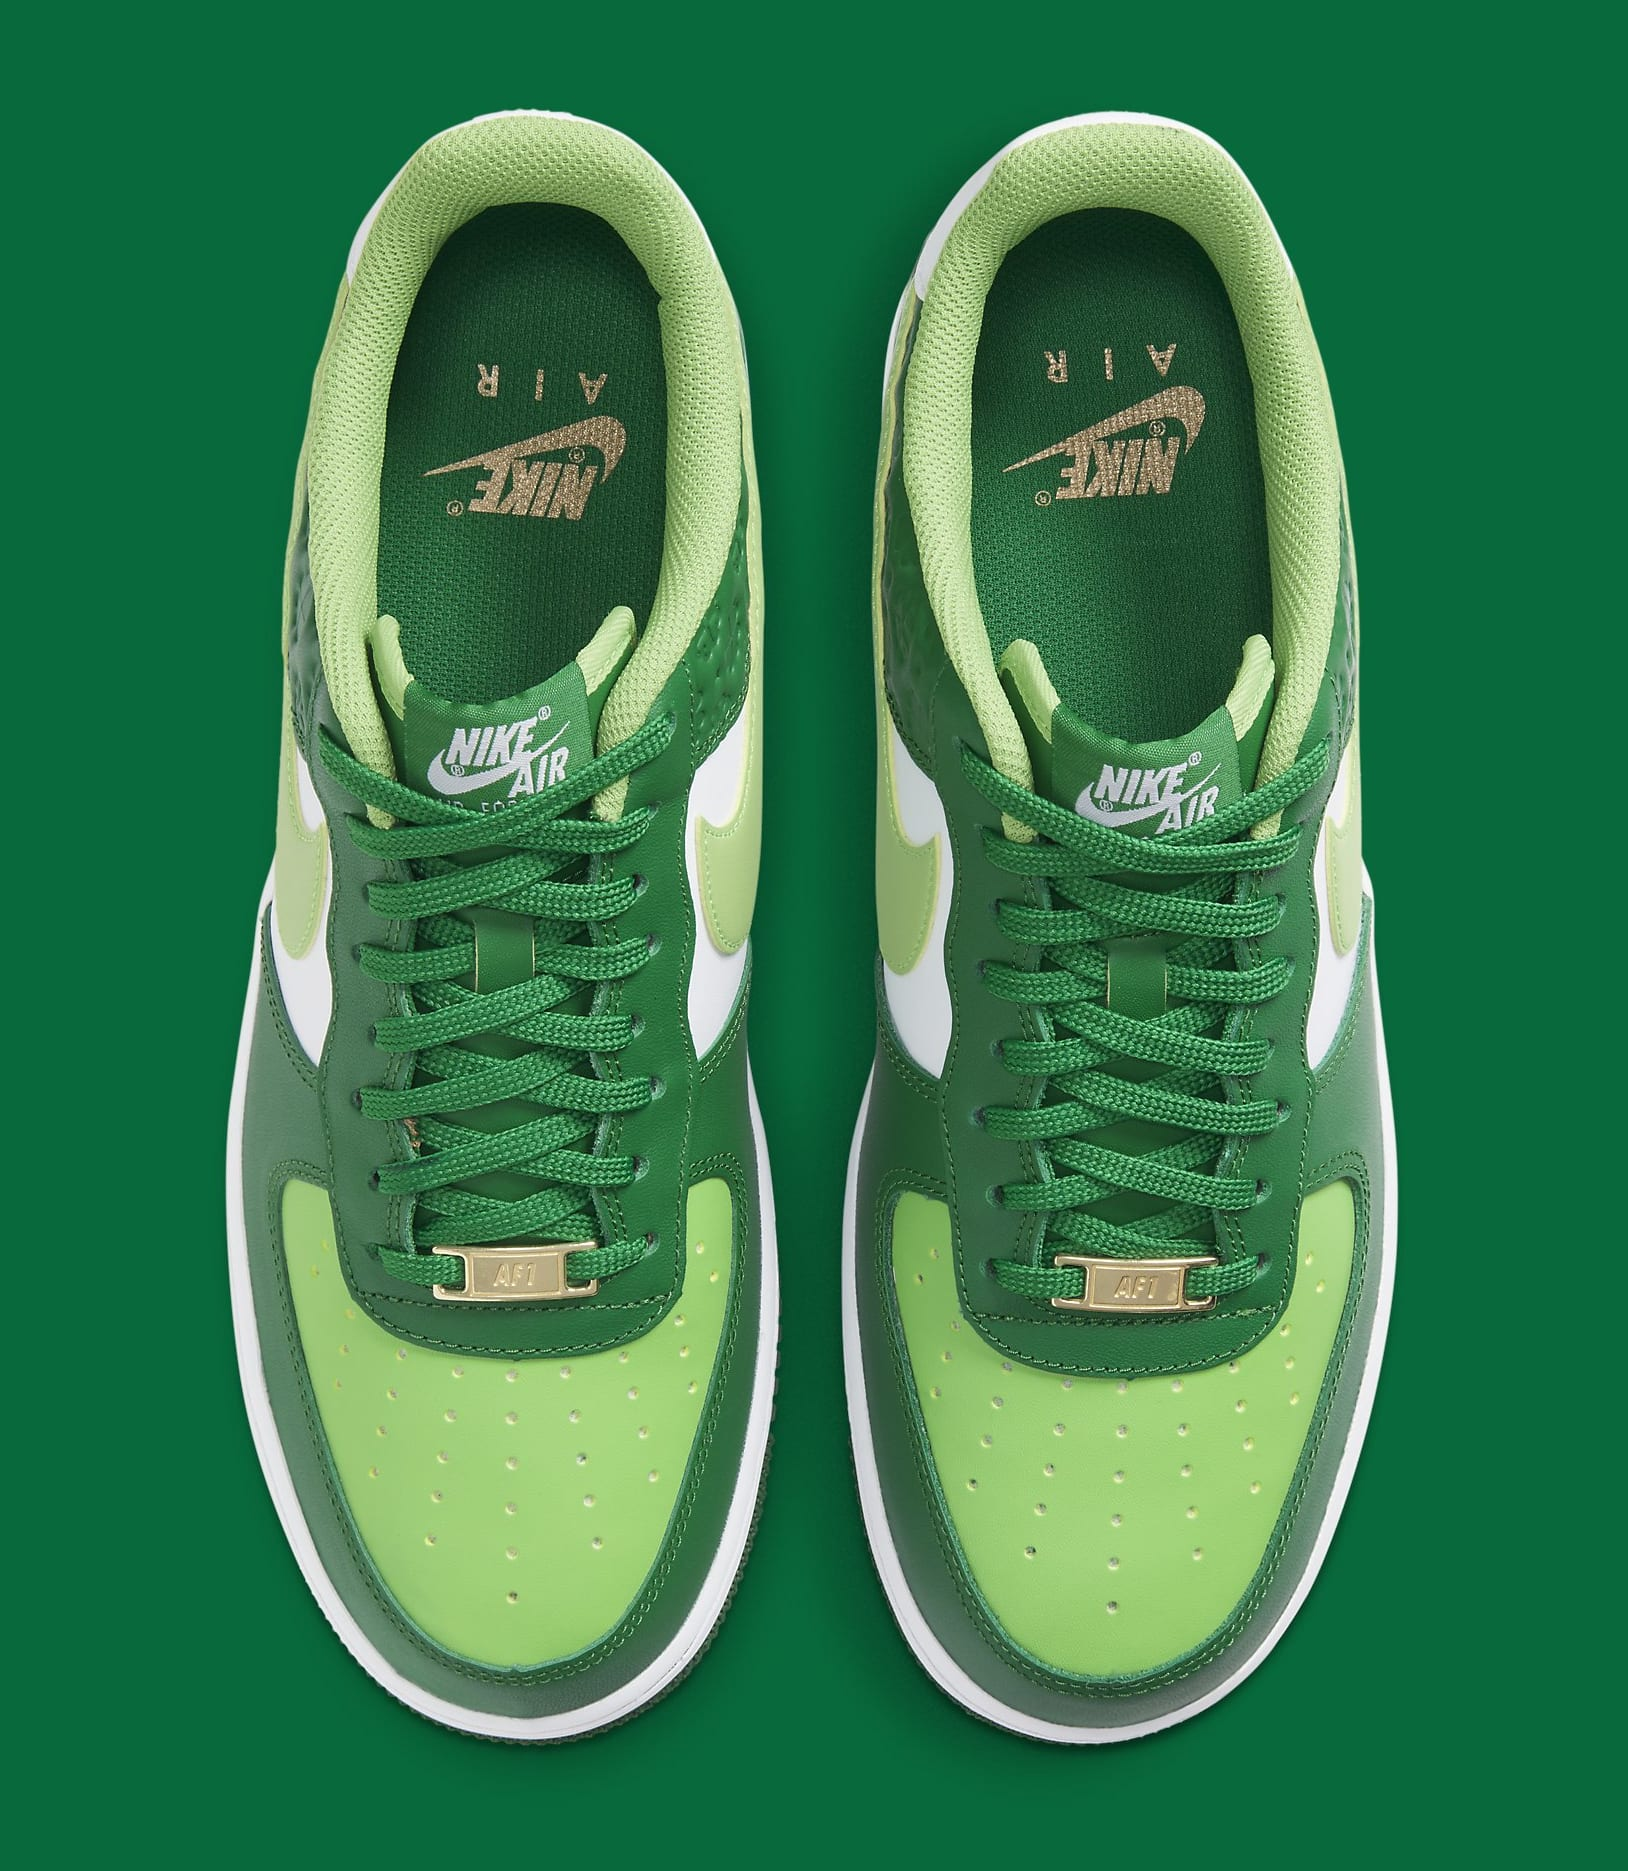 Nike Air Force 1 Low 'St. Patrick's Day' DD8458-300 Top